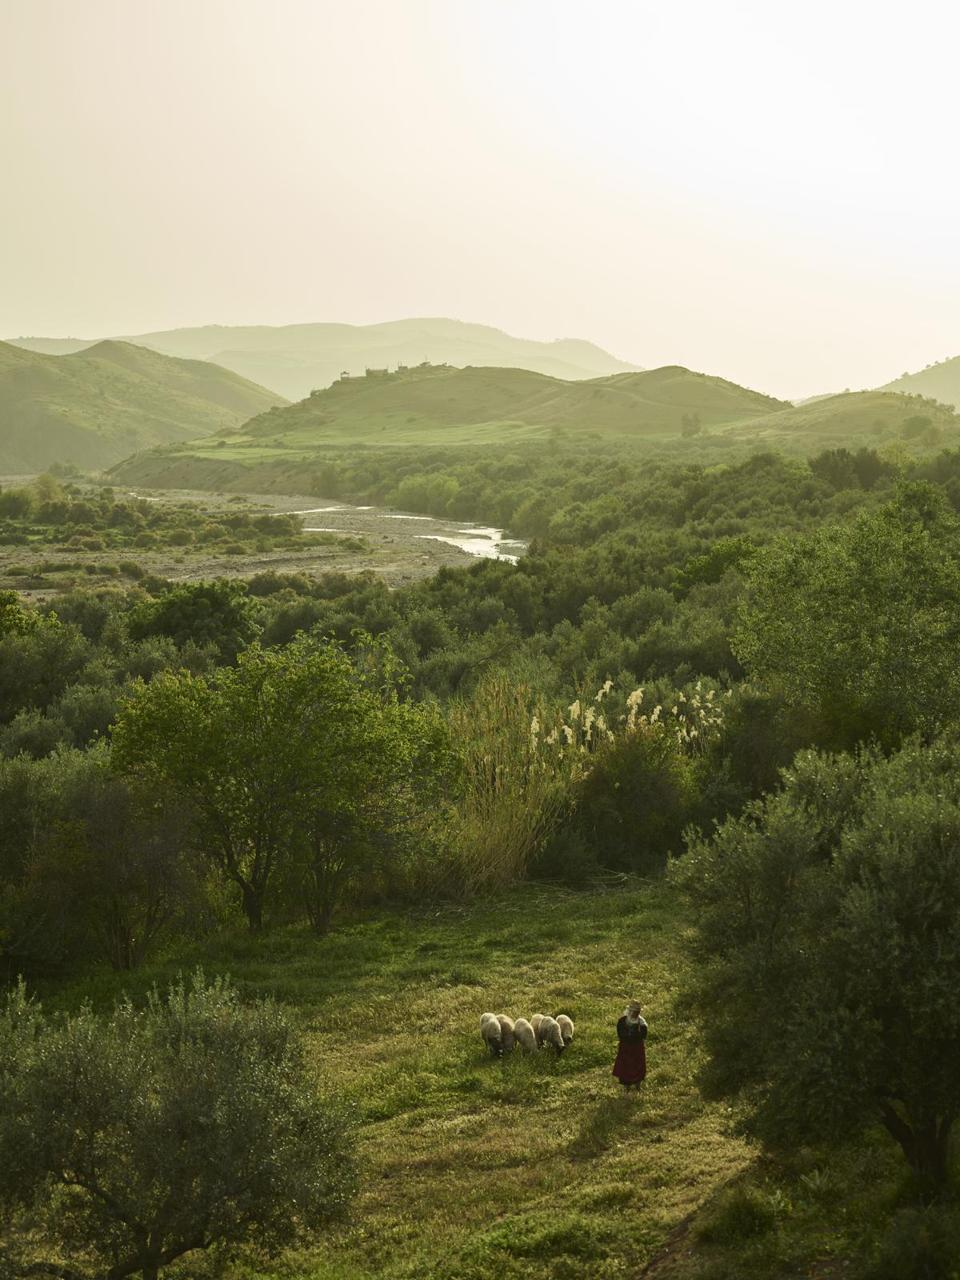 A shepherd tending a flock in Morocco's Ourika Valley.